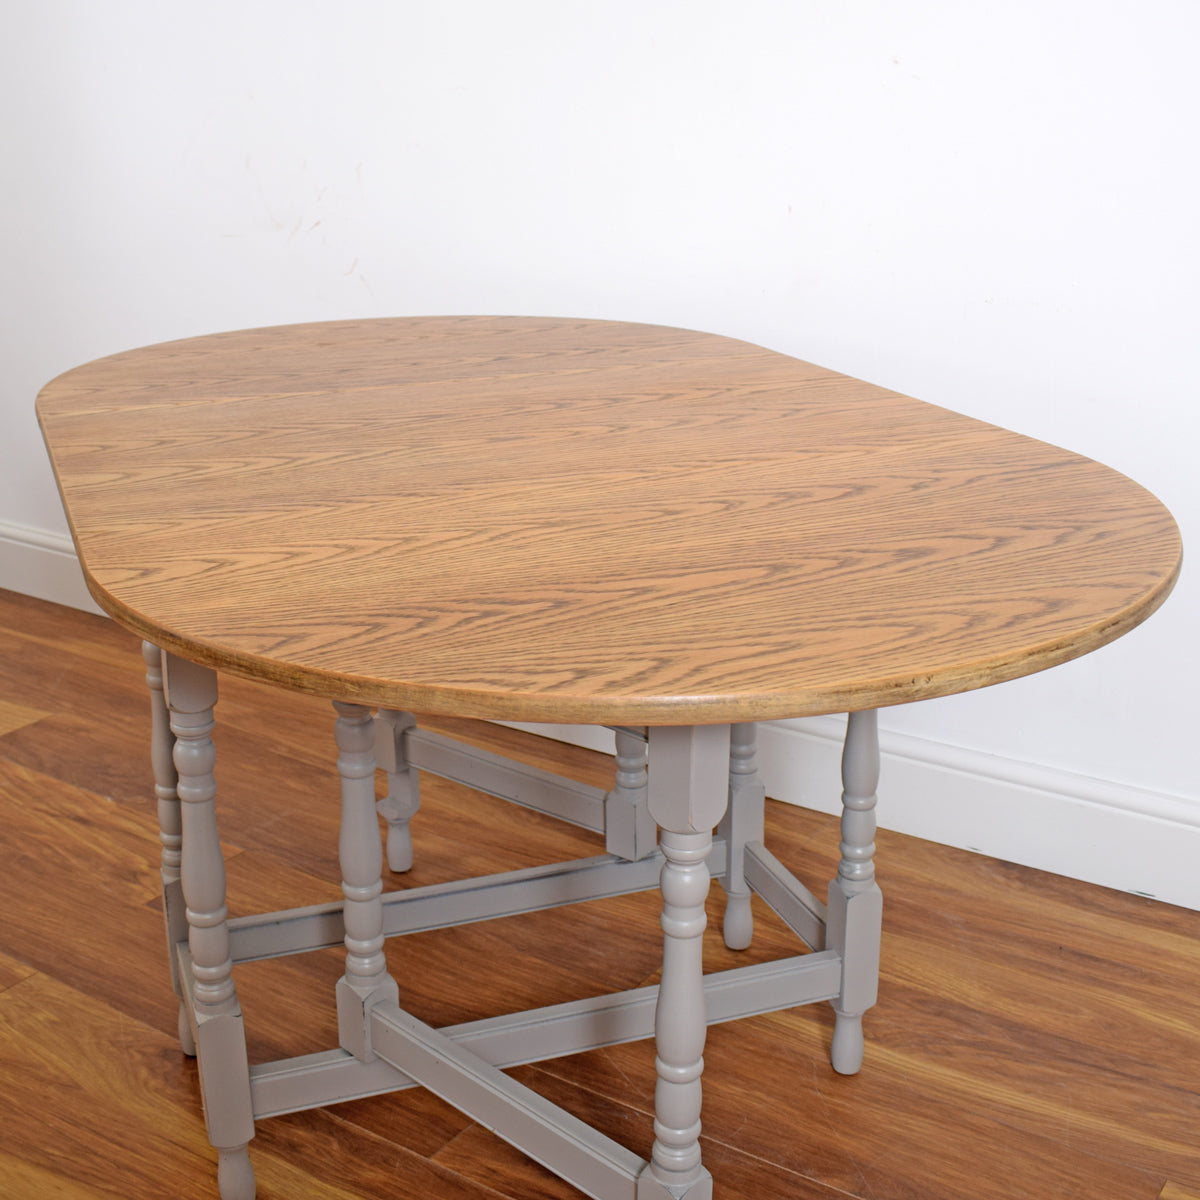 Drop Leaf Table & 2 Chairs